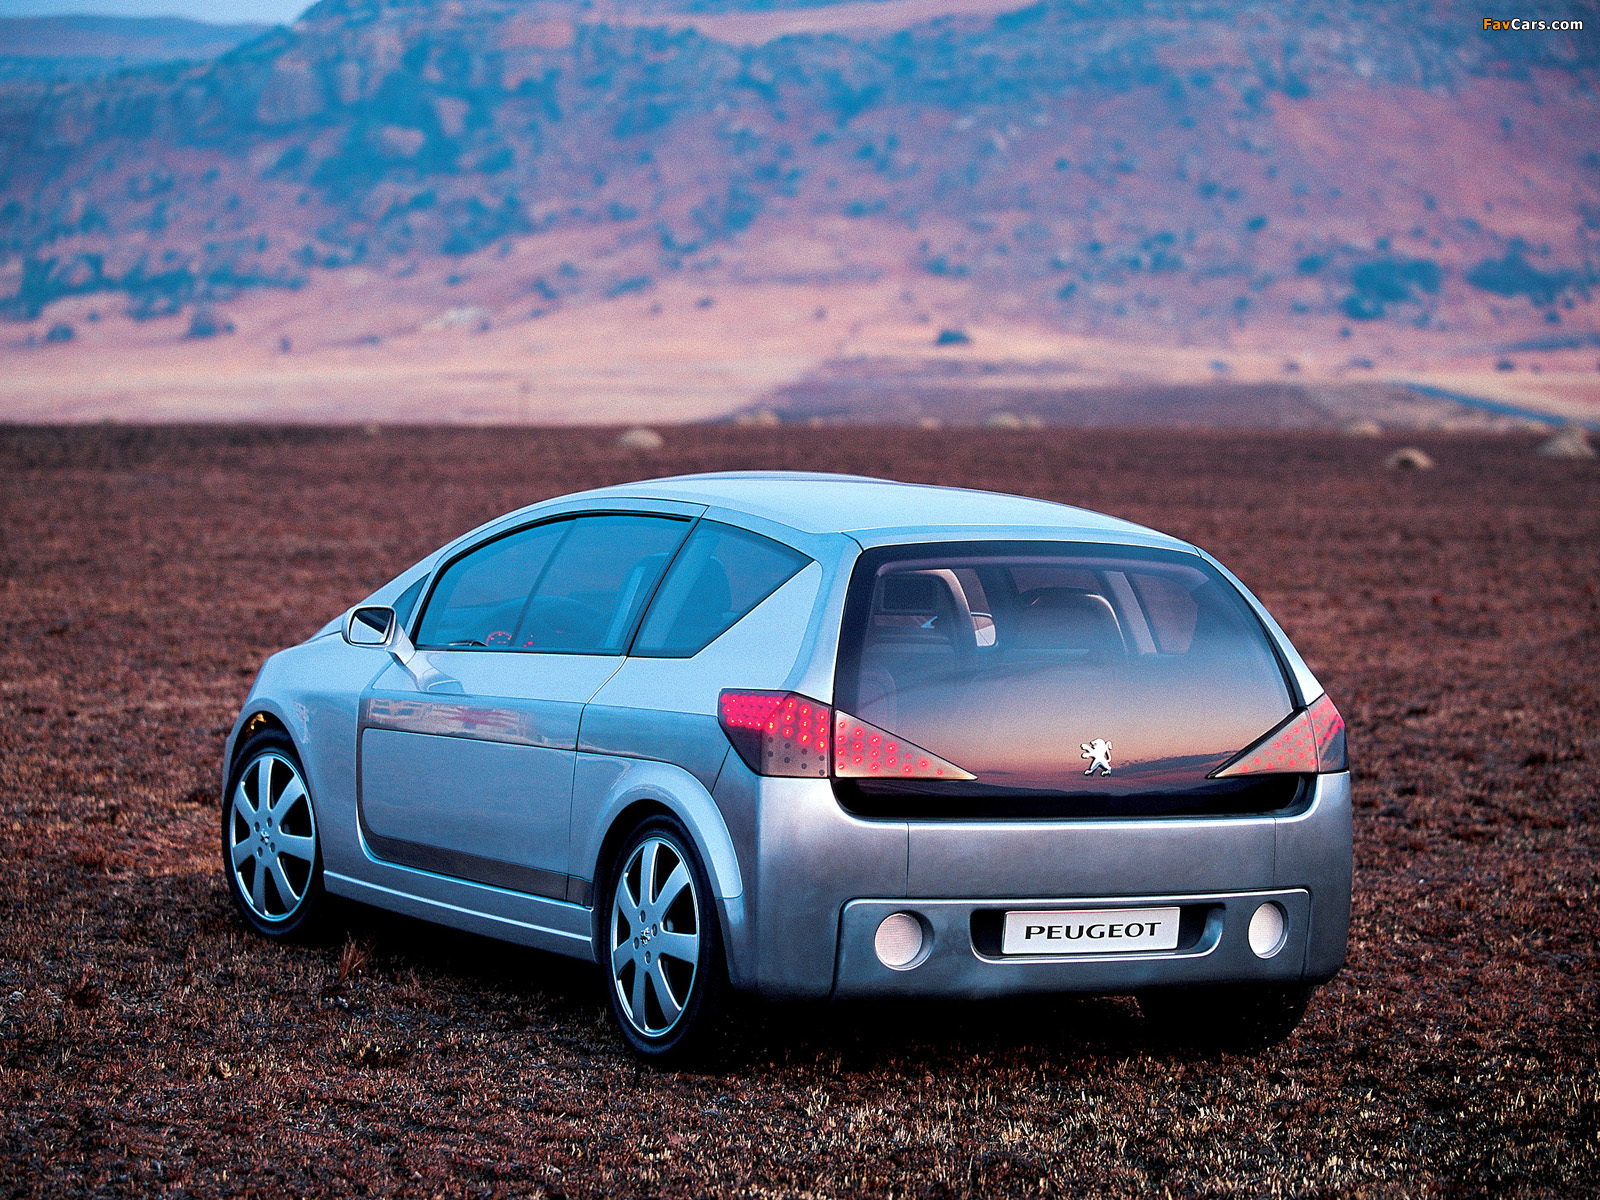 Images of Peugeot Promethee Concept 2000 (1600 x 1200)